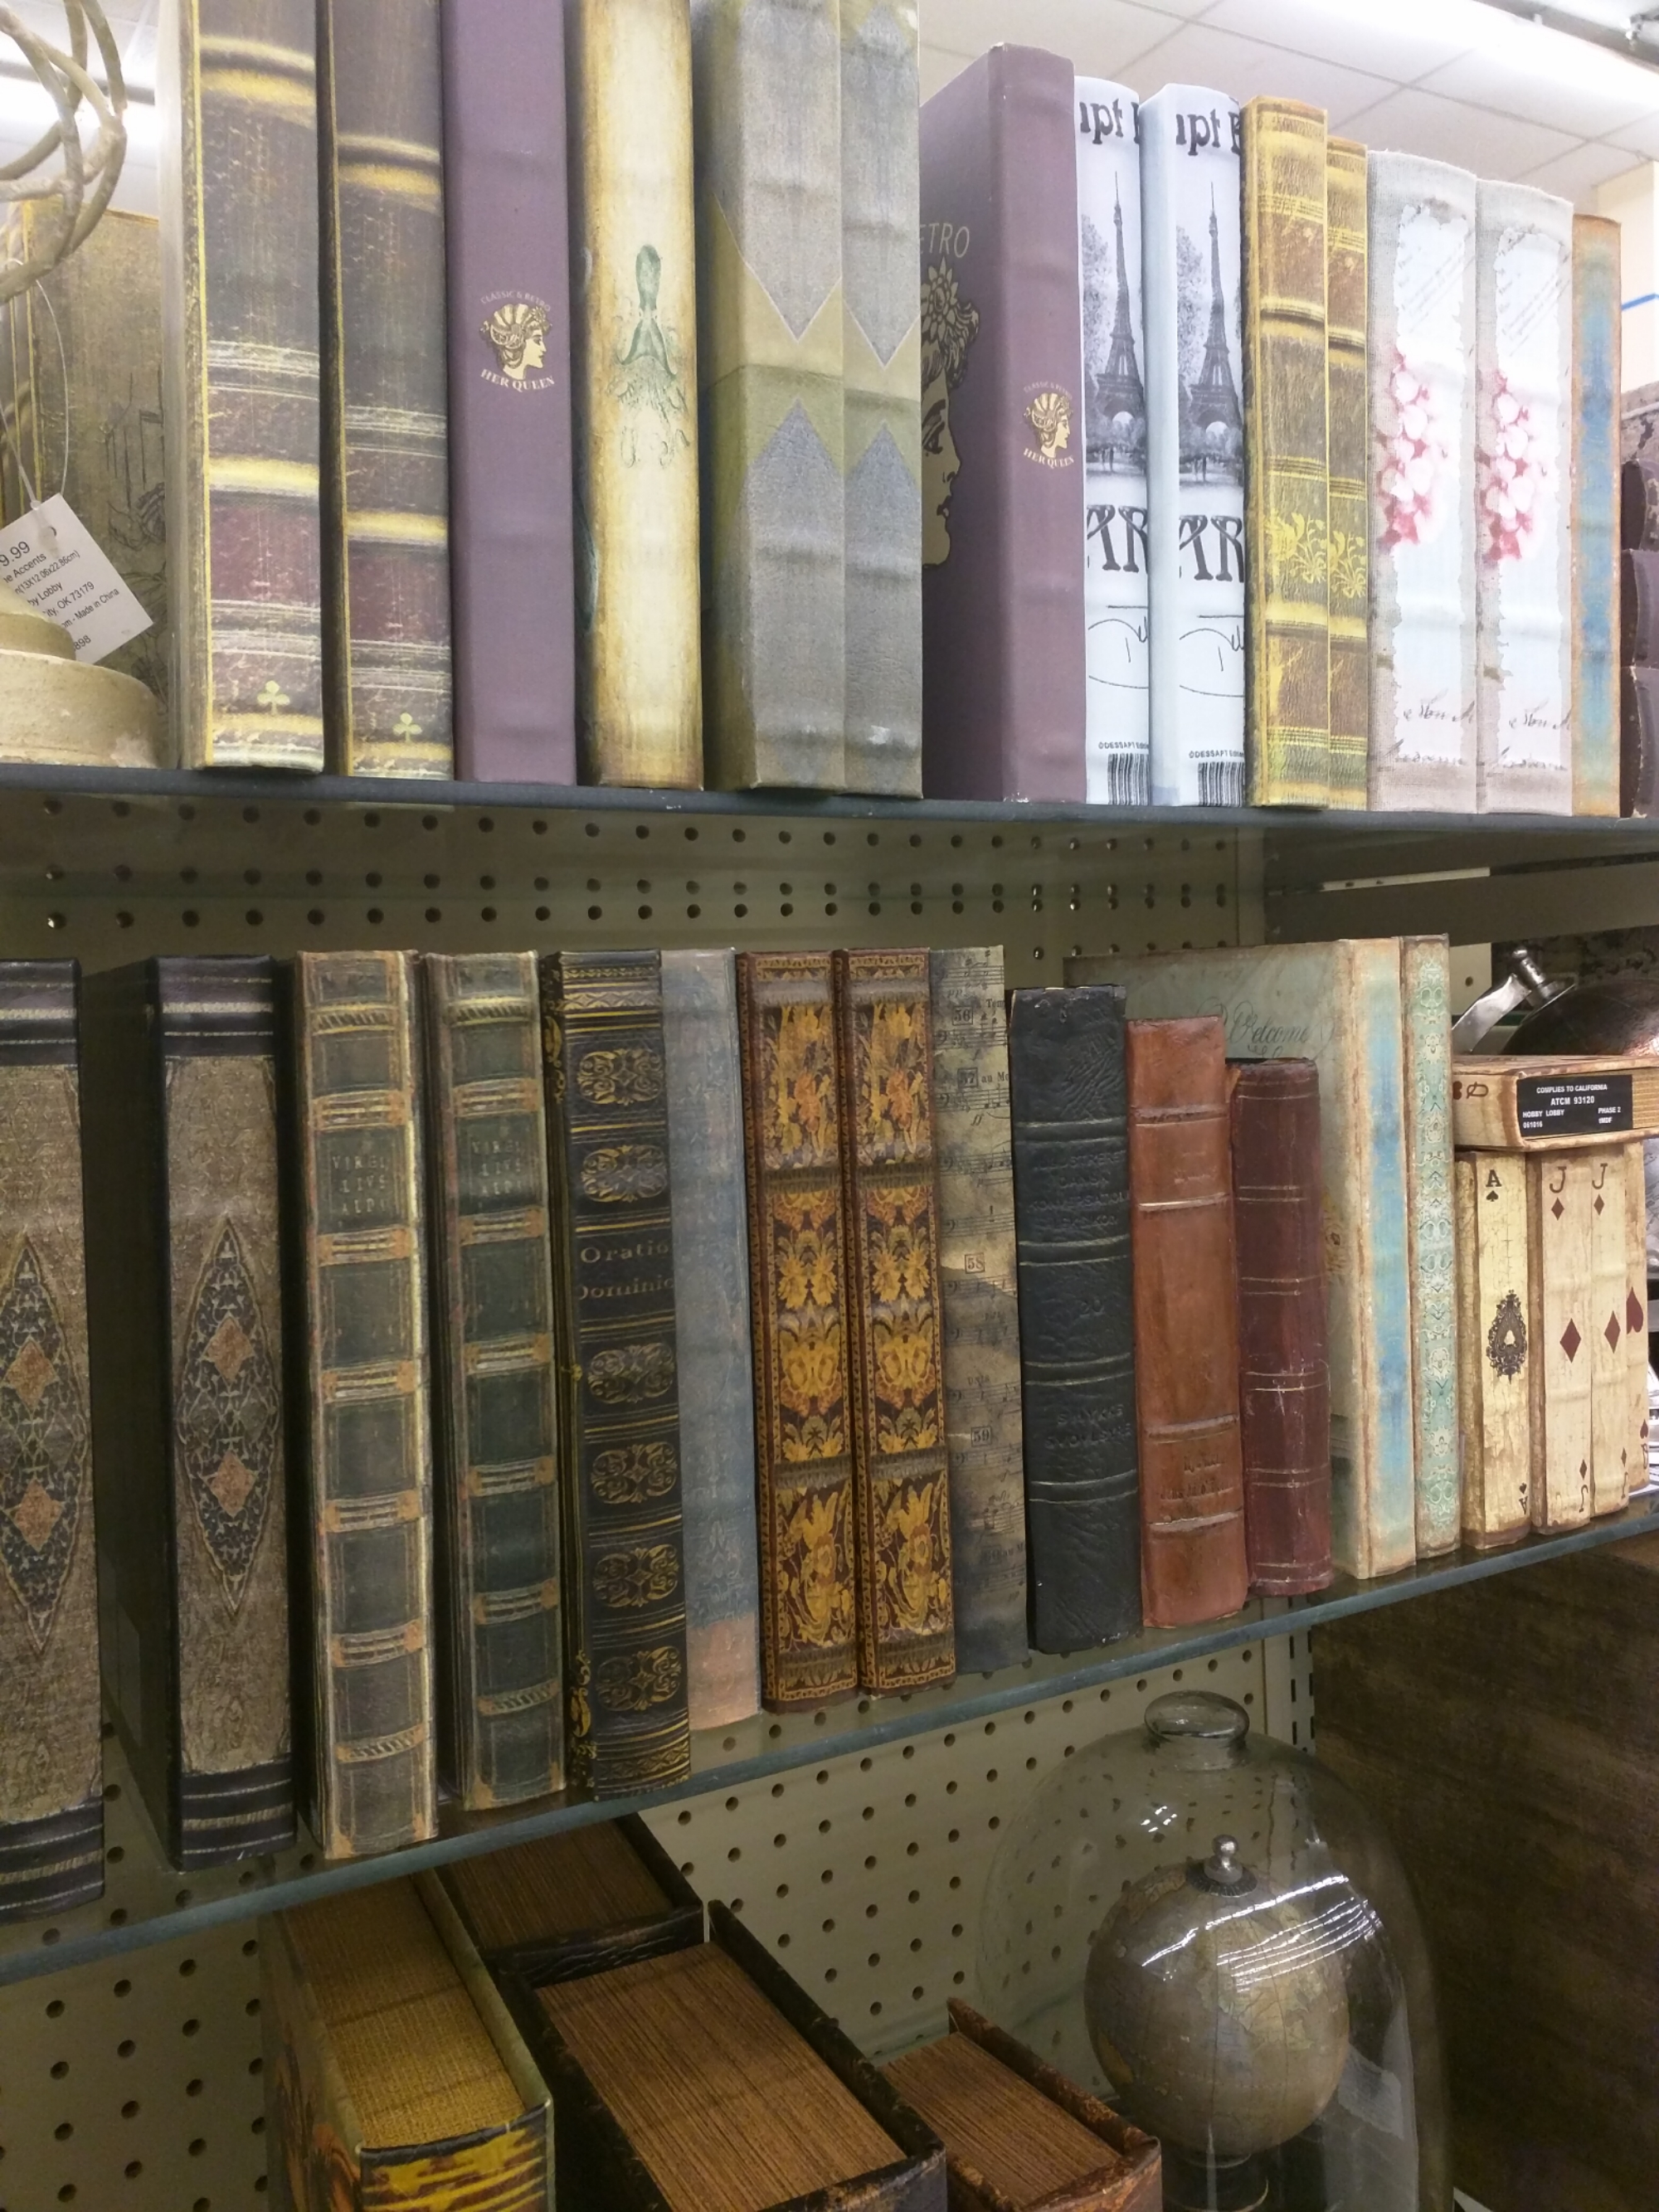 Fake Books at Hobby Lobby